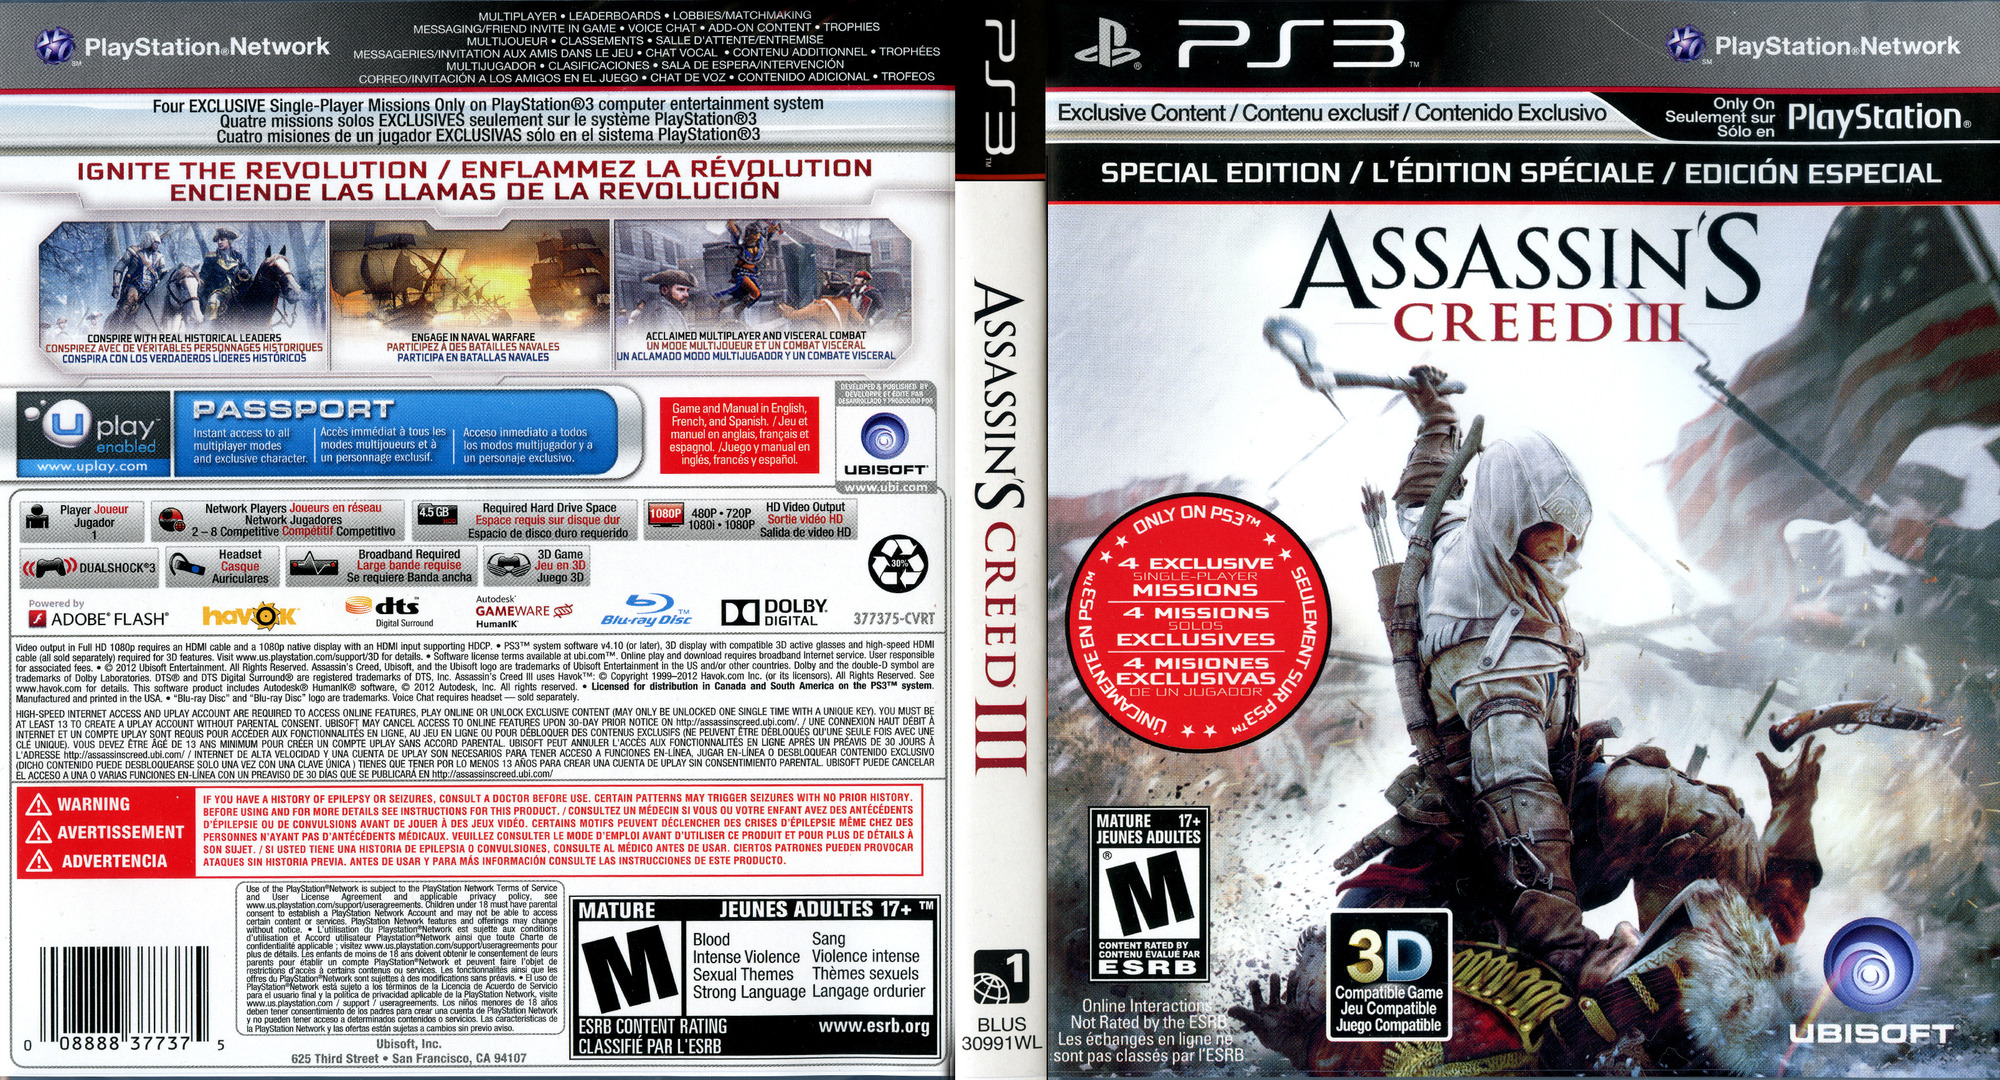 New Action Games For Ps3 : Blus assassin s creed iii